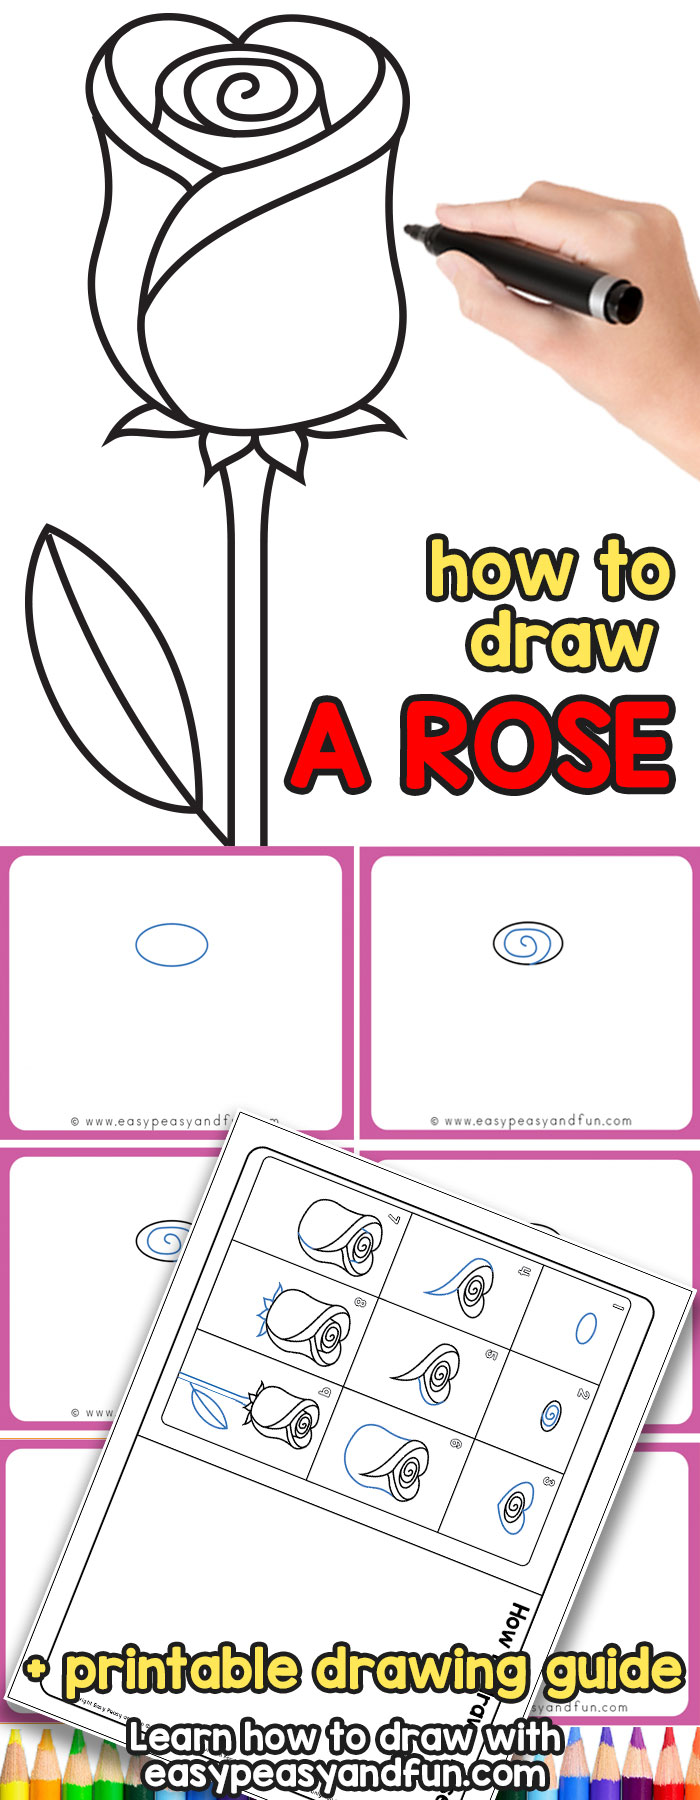 How to Draw a Rose - an easy step by step drawing tutorial for kids and beginners